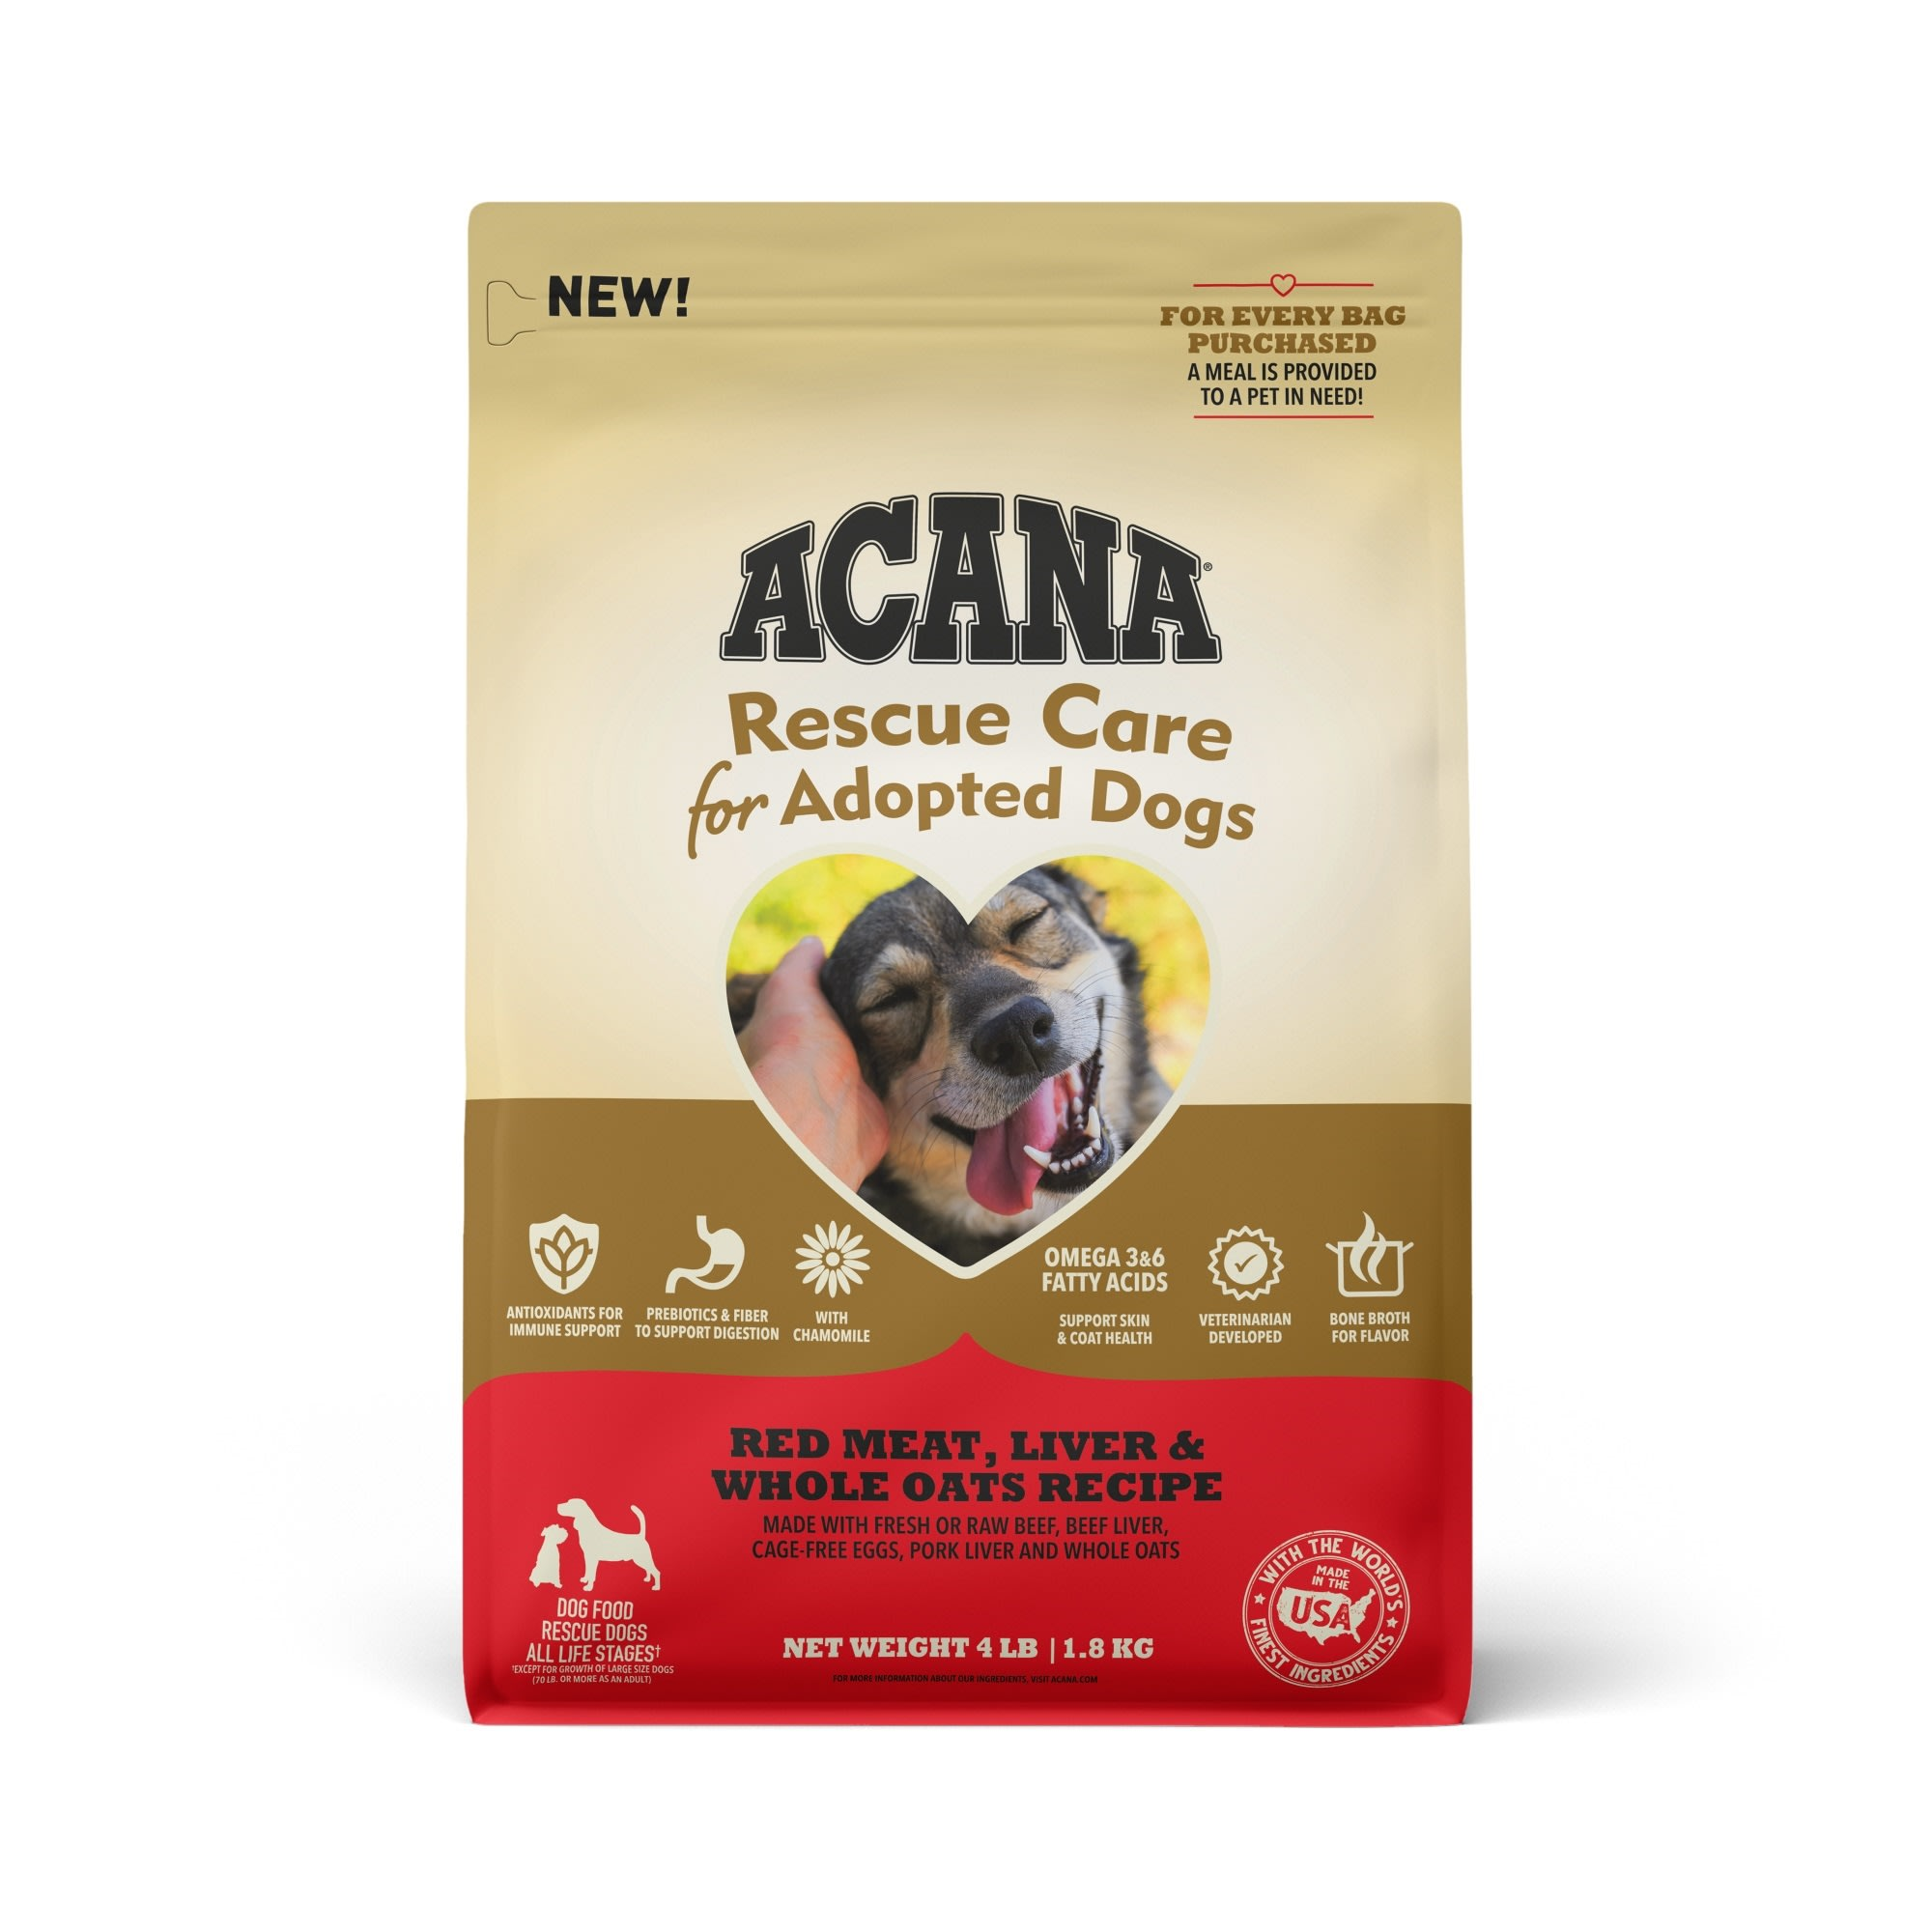 ACANA Rescue Care For Adopted Dogs Red Meat, Liver & Whole Oats Recipe Premium Dry Food